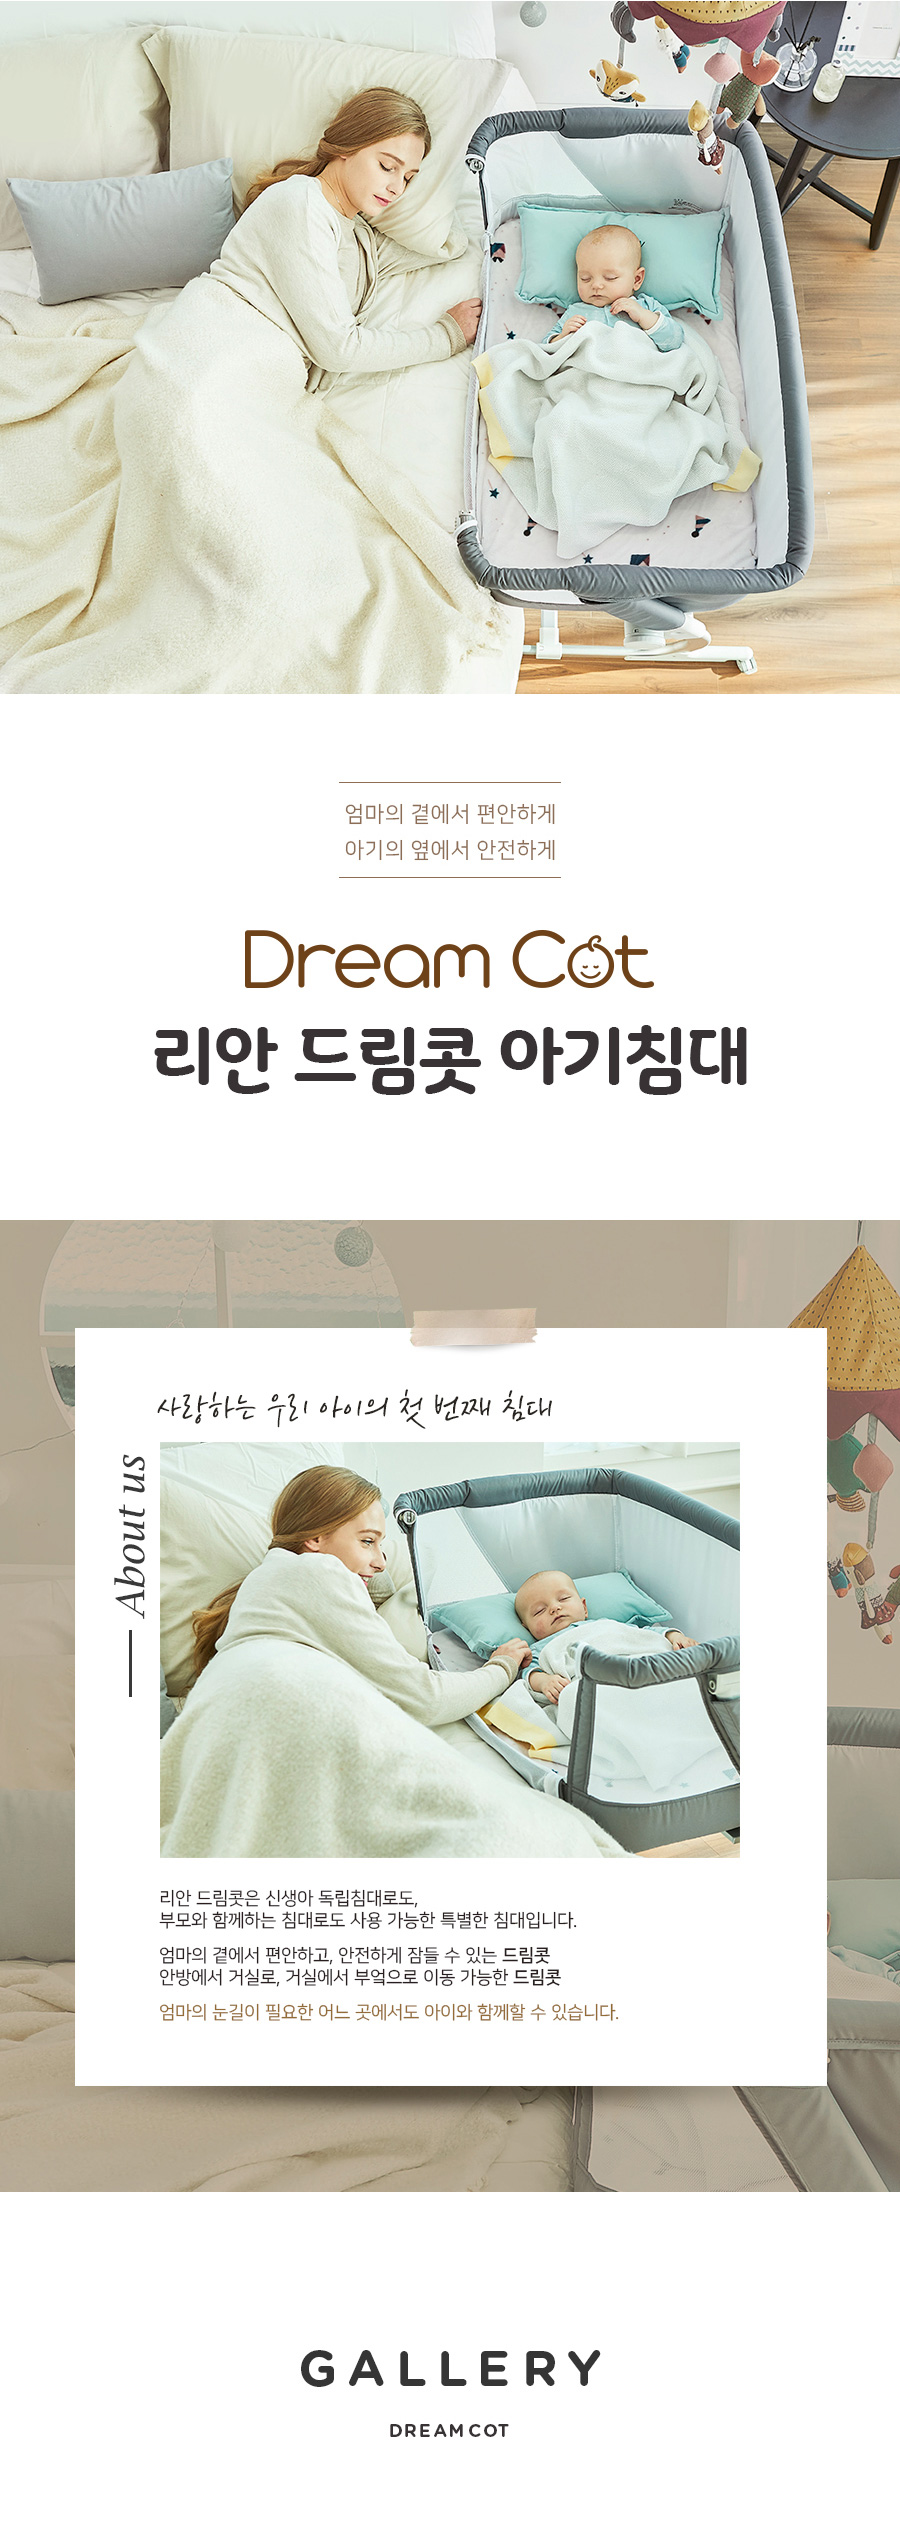 dreamcot_2019